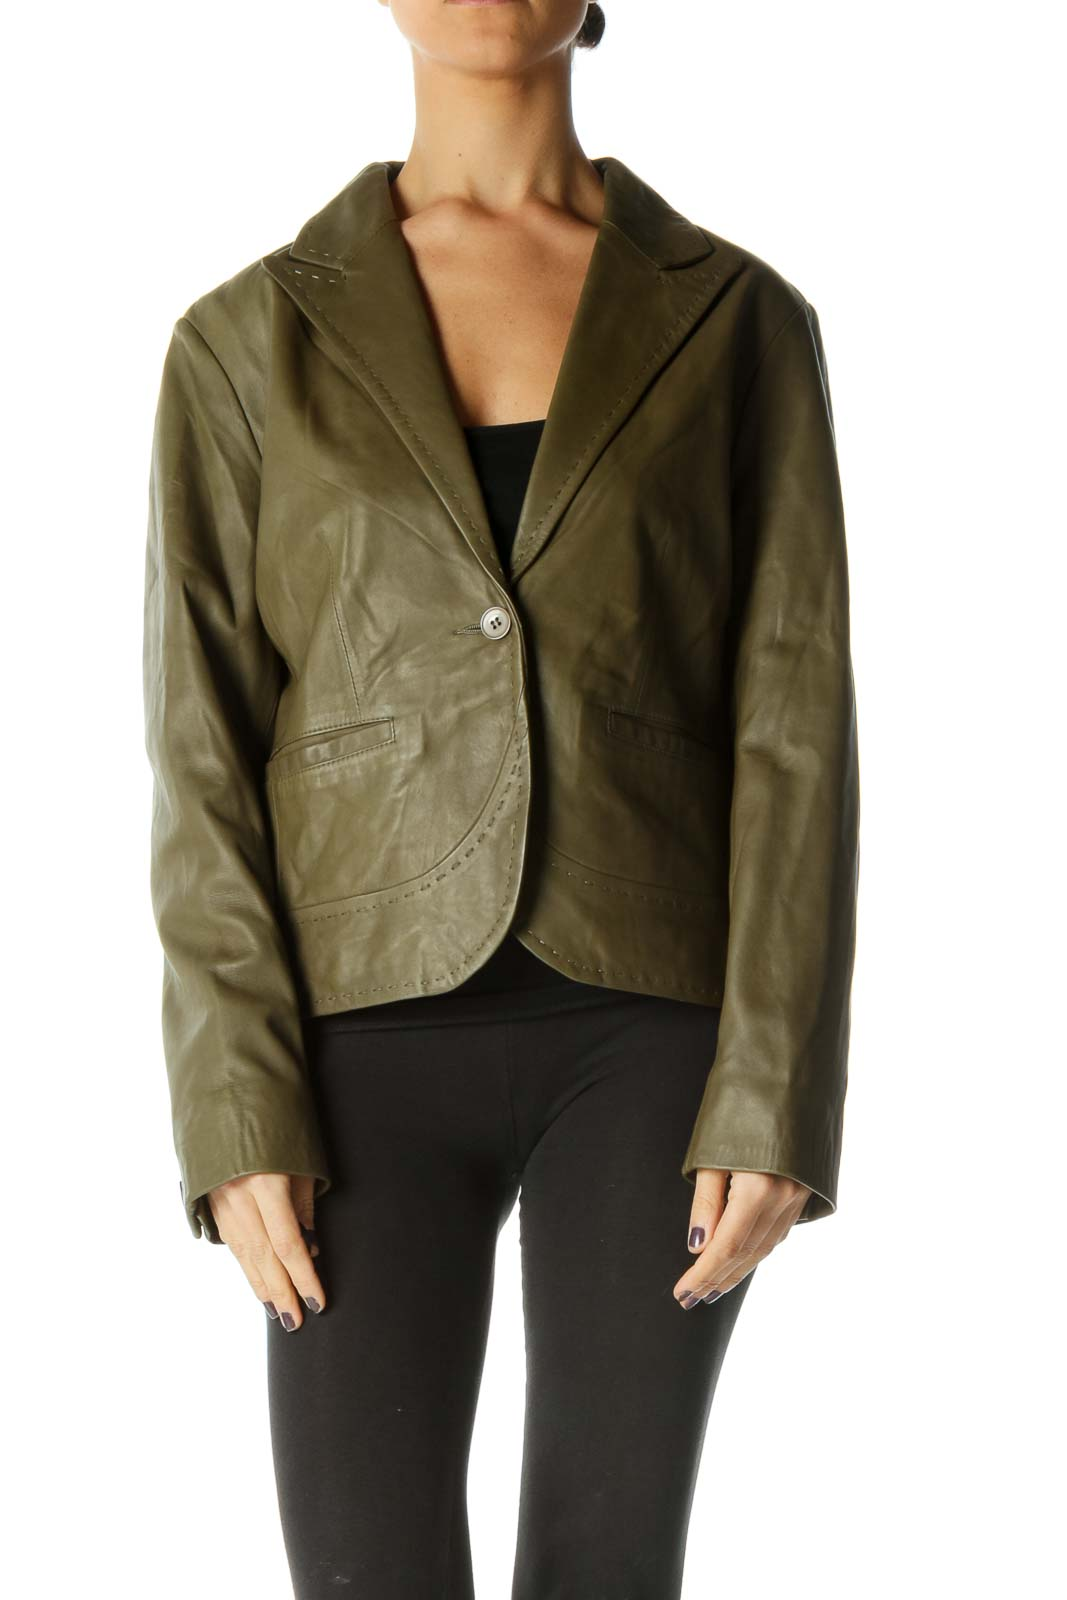 Green Long Sleeve Military Jacket Front